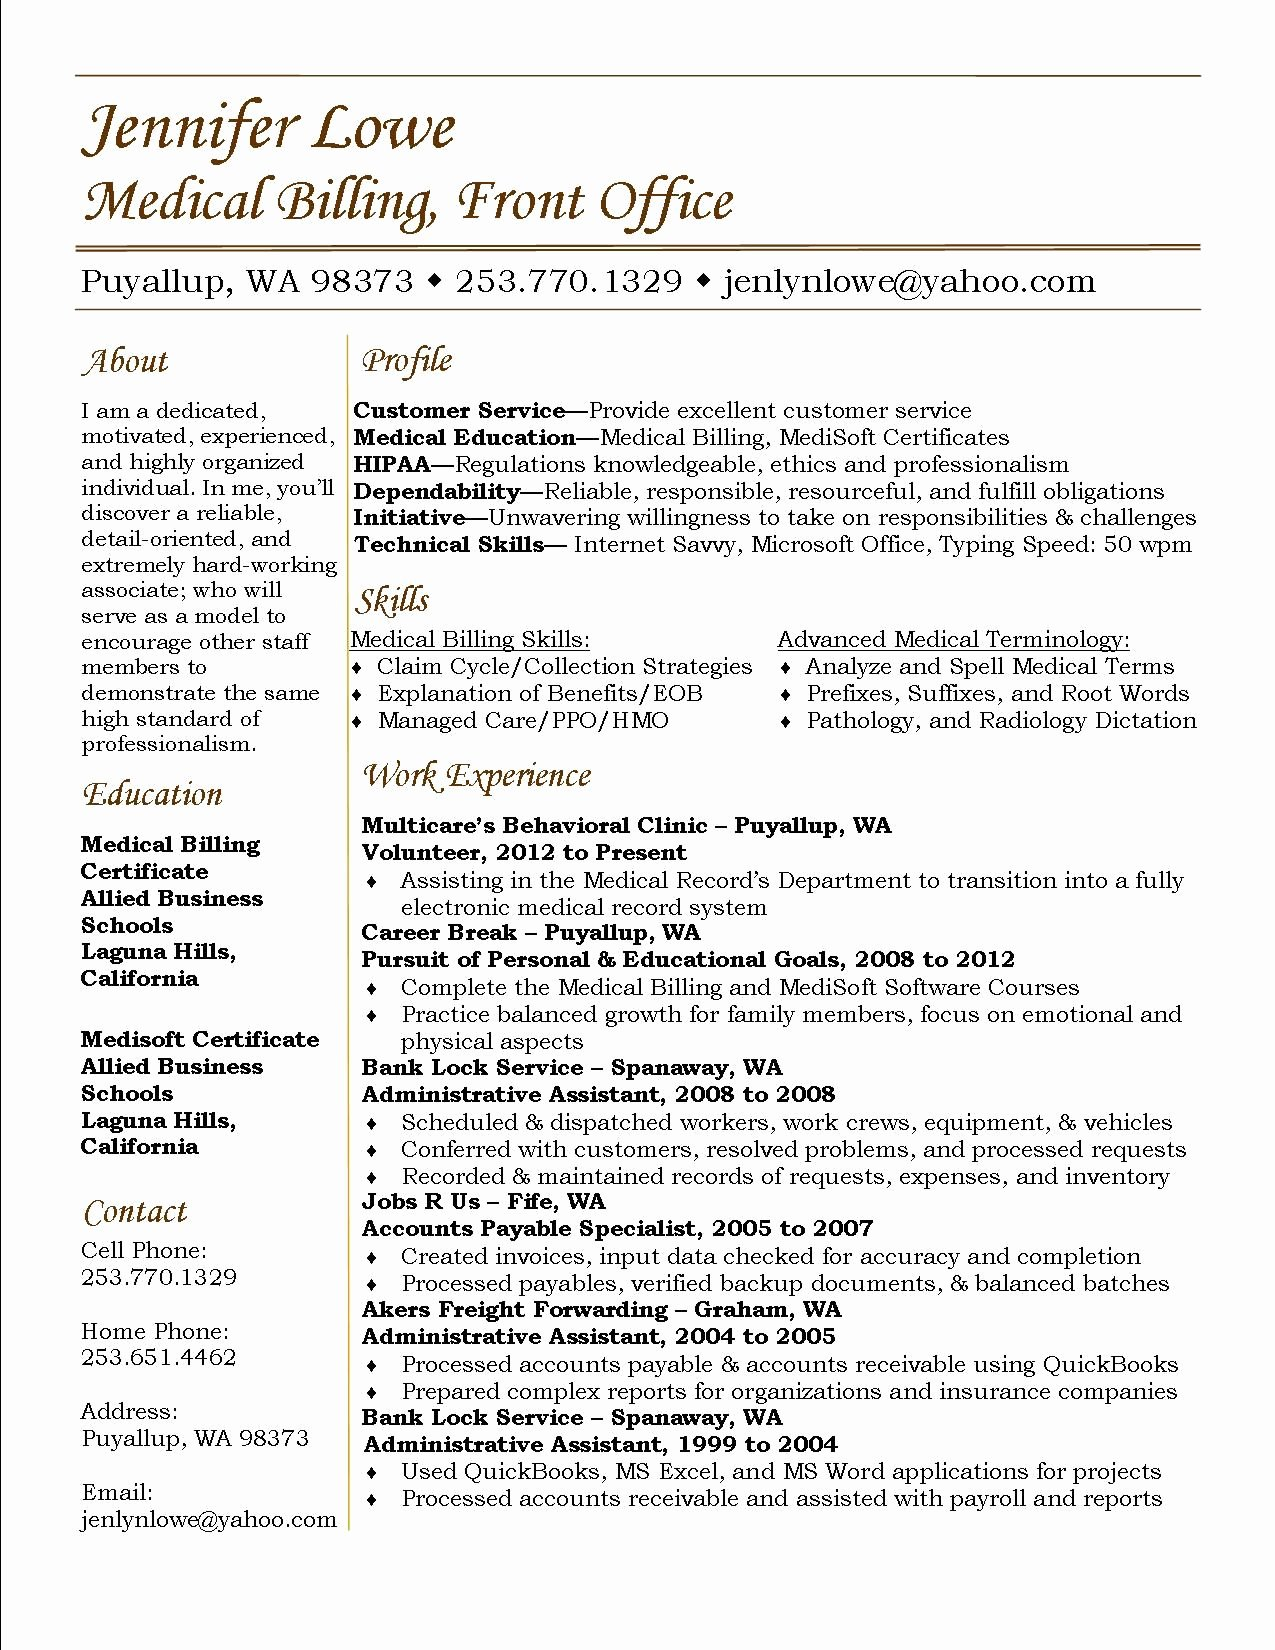 Medical Biller Resume Examples Lovely Jennifer Lowe Resume Medical Billing Resume Career